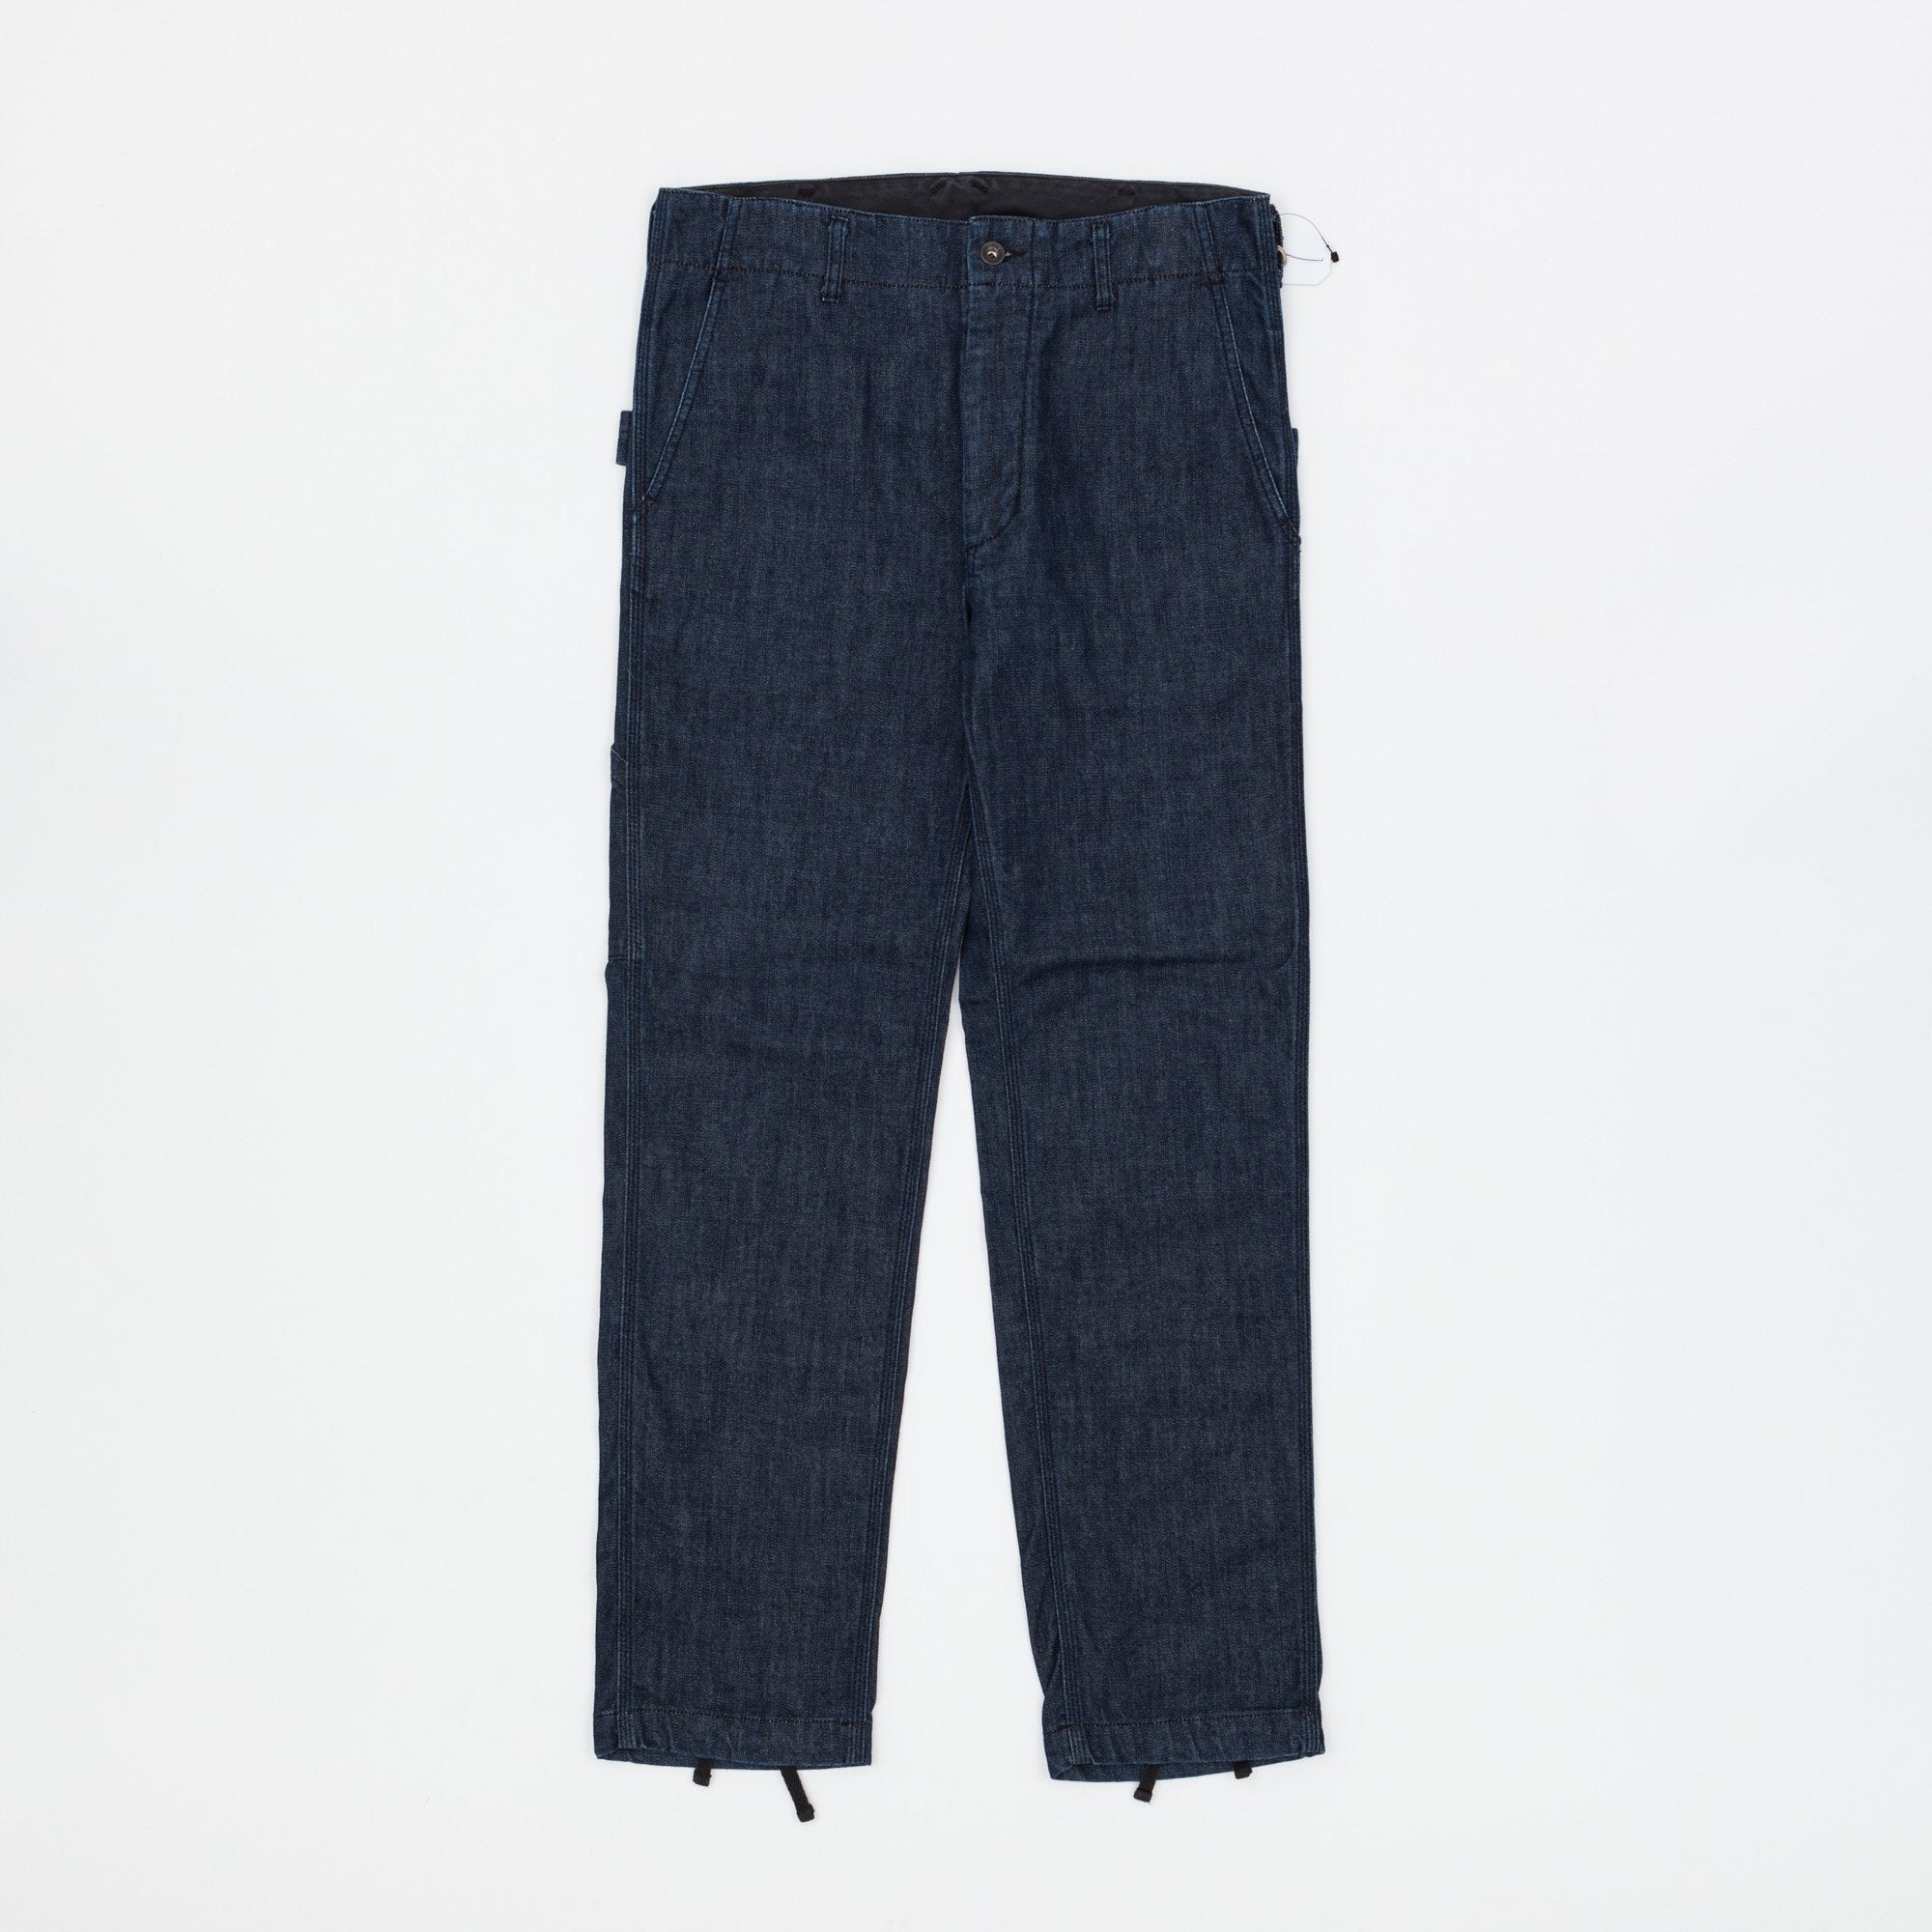 Engineered Garments Cone Denim Painter Pant